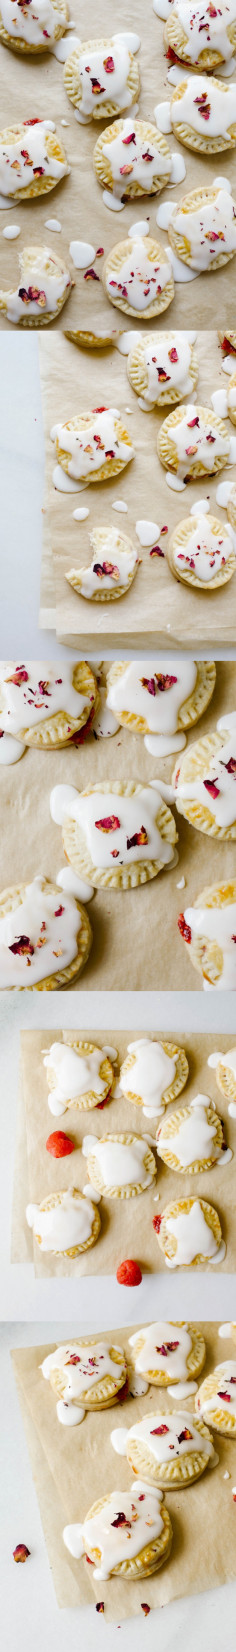 Raspberry Champagne Pop-Tarts - Wood & Spoon